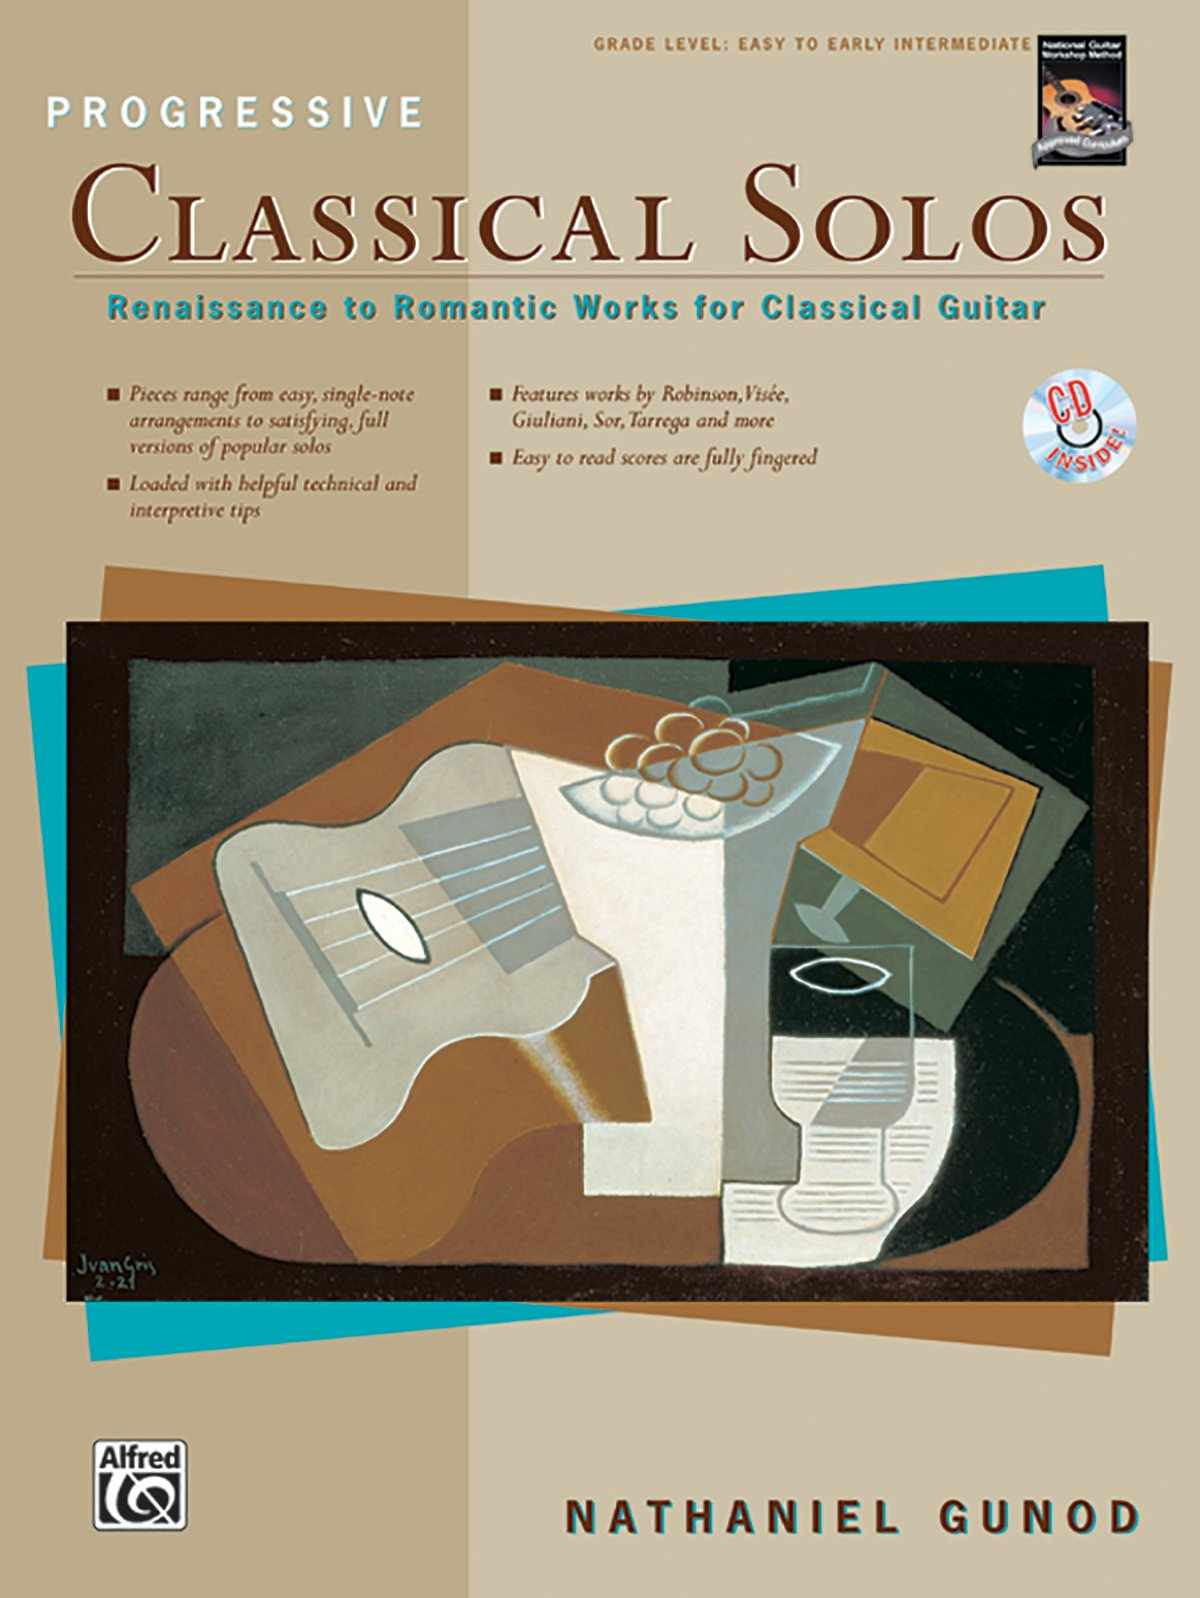 Progressive Classical Solos: Renaissance to Romantic Works for Classical Guitar, Book & CD, Gunod, Nathaniel